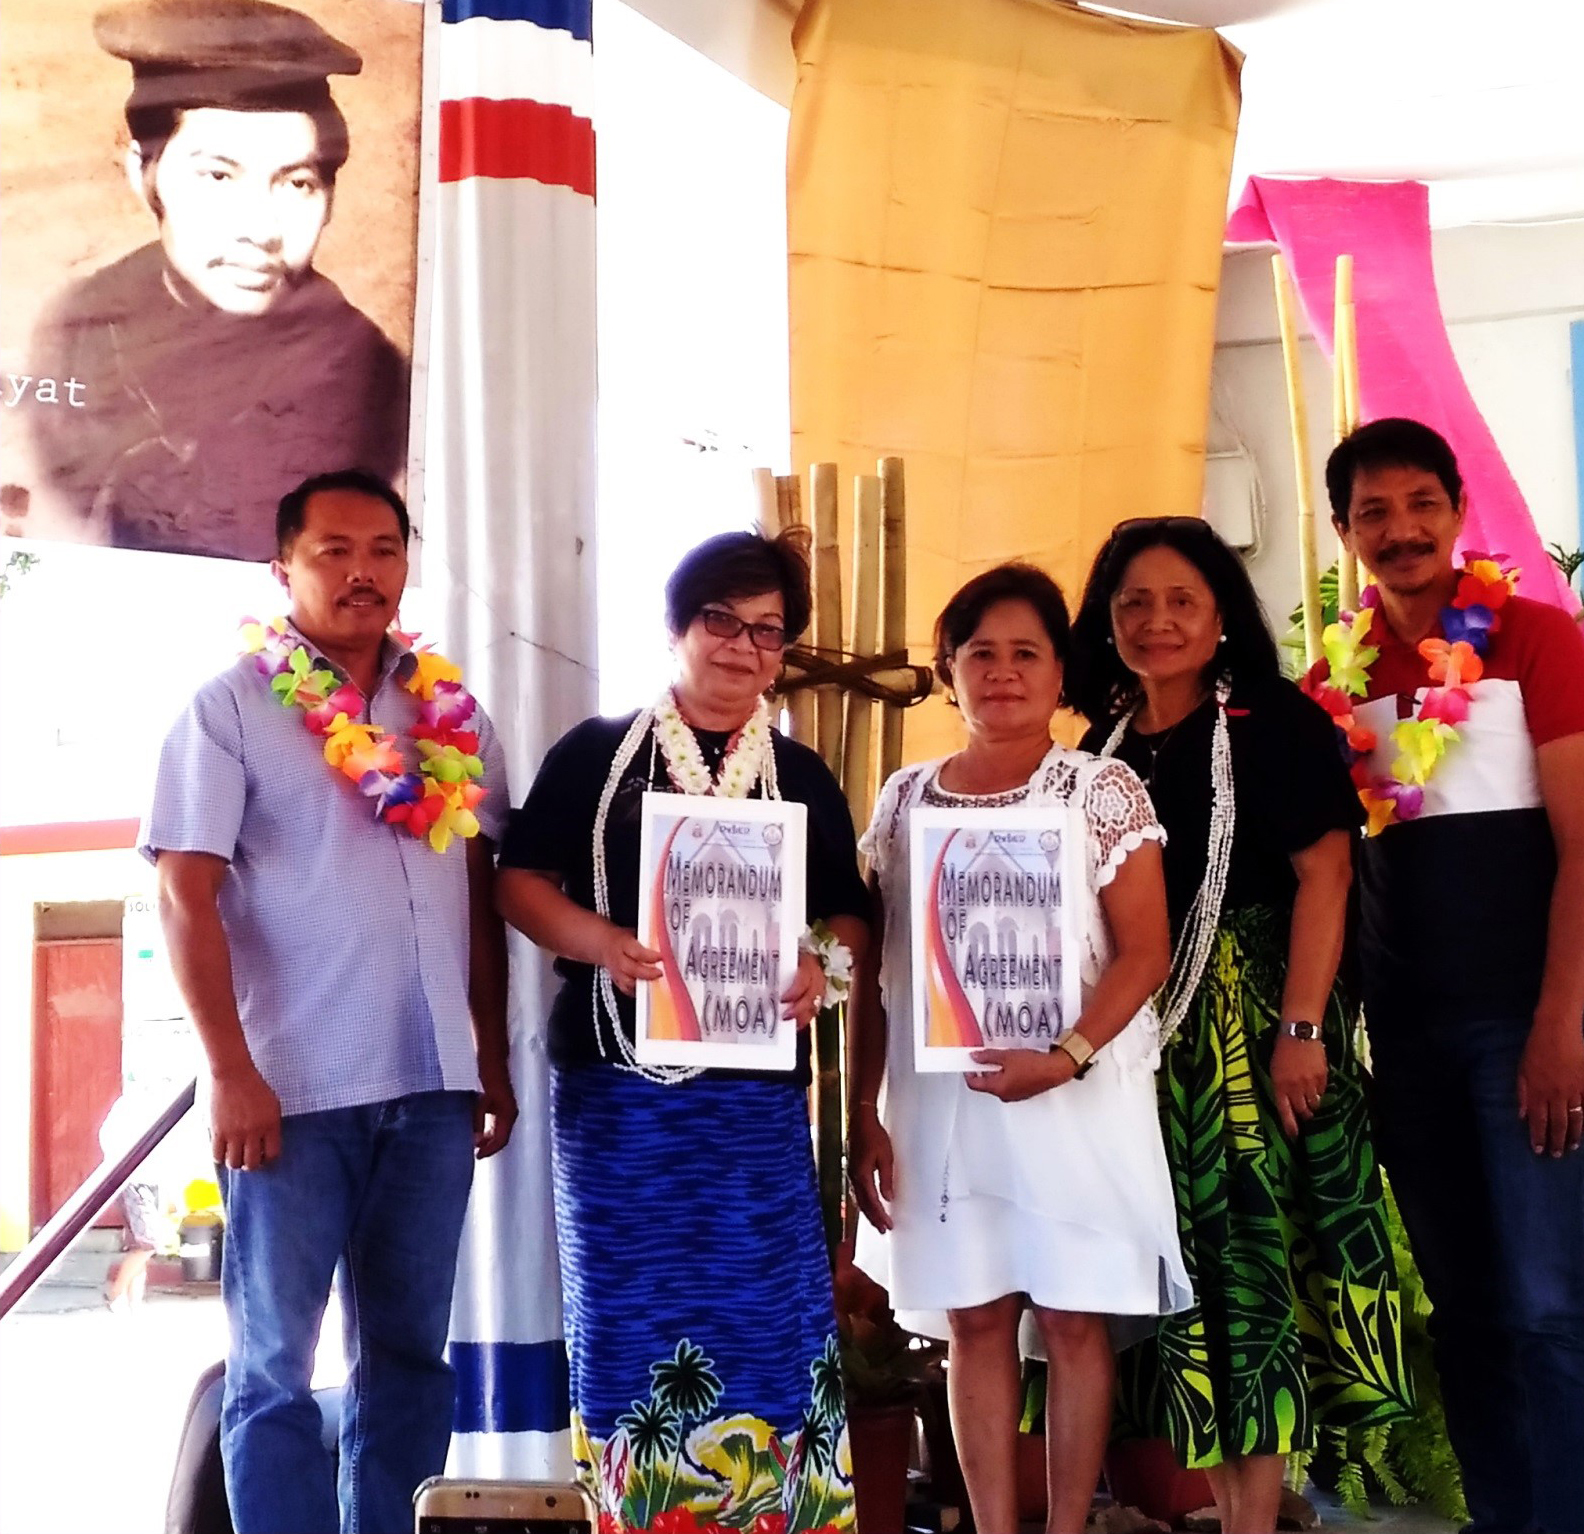 JENNY ALCAUSIN (2ND FROM LEFT) AND JULIANA PILA of Cabaroan-Cabalangegan Elem School (CCES) hold copies of the MOA as they pose for remembrance in front of the tarpaulined image of Mario Albalos, Feb. 2 at CCES in Cabaroan Laud, Vigan City. At left is Vigan City DepEd Superintendent Alselmo Aludino.